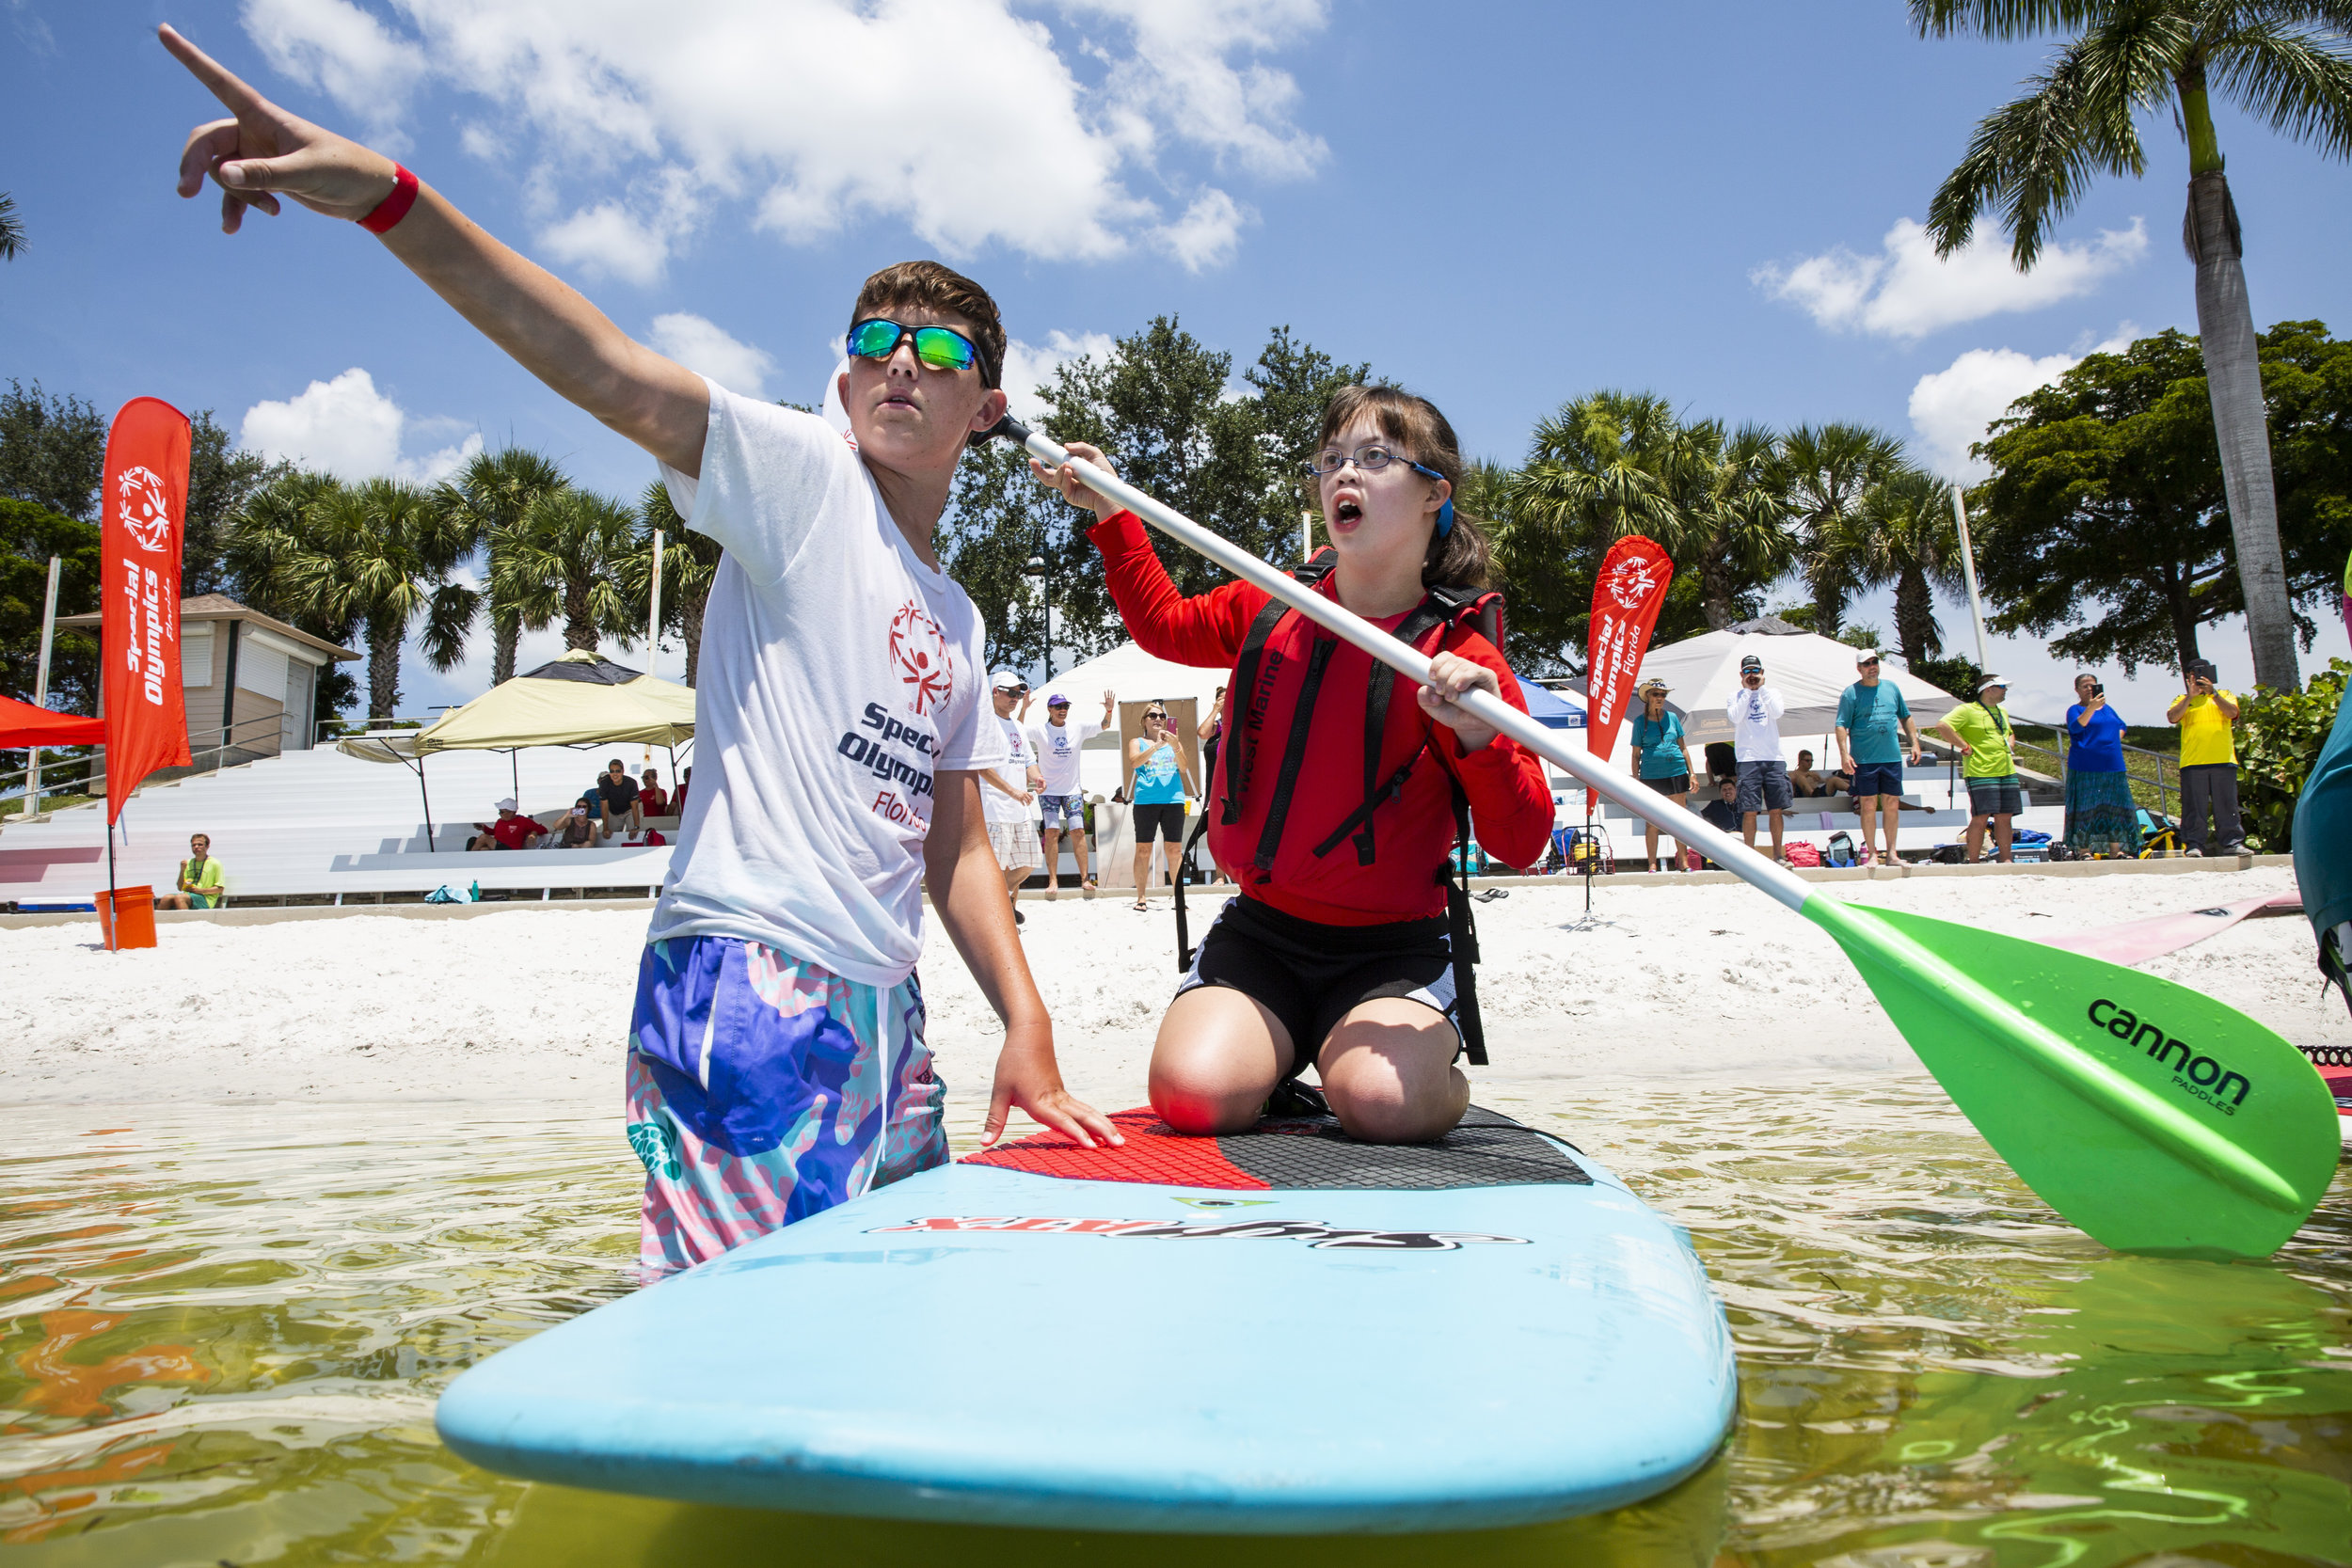 Volunteer Johnathan Konopik, 13, points out the course buoys to Natalie Pernia, 18, from Manatee County, before the start of her race during the Special Olympics Florida Area 9 Standup Paddle Competition on July 14, 2018 at Sugden Regional Park in Naples.